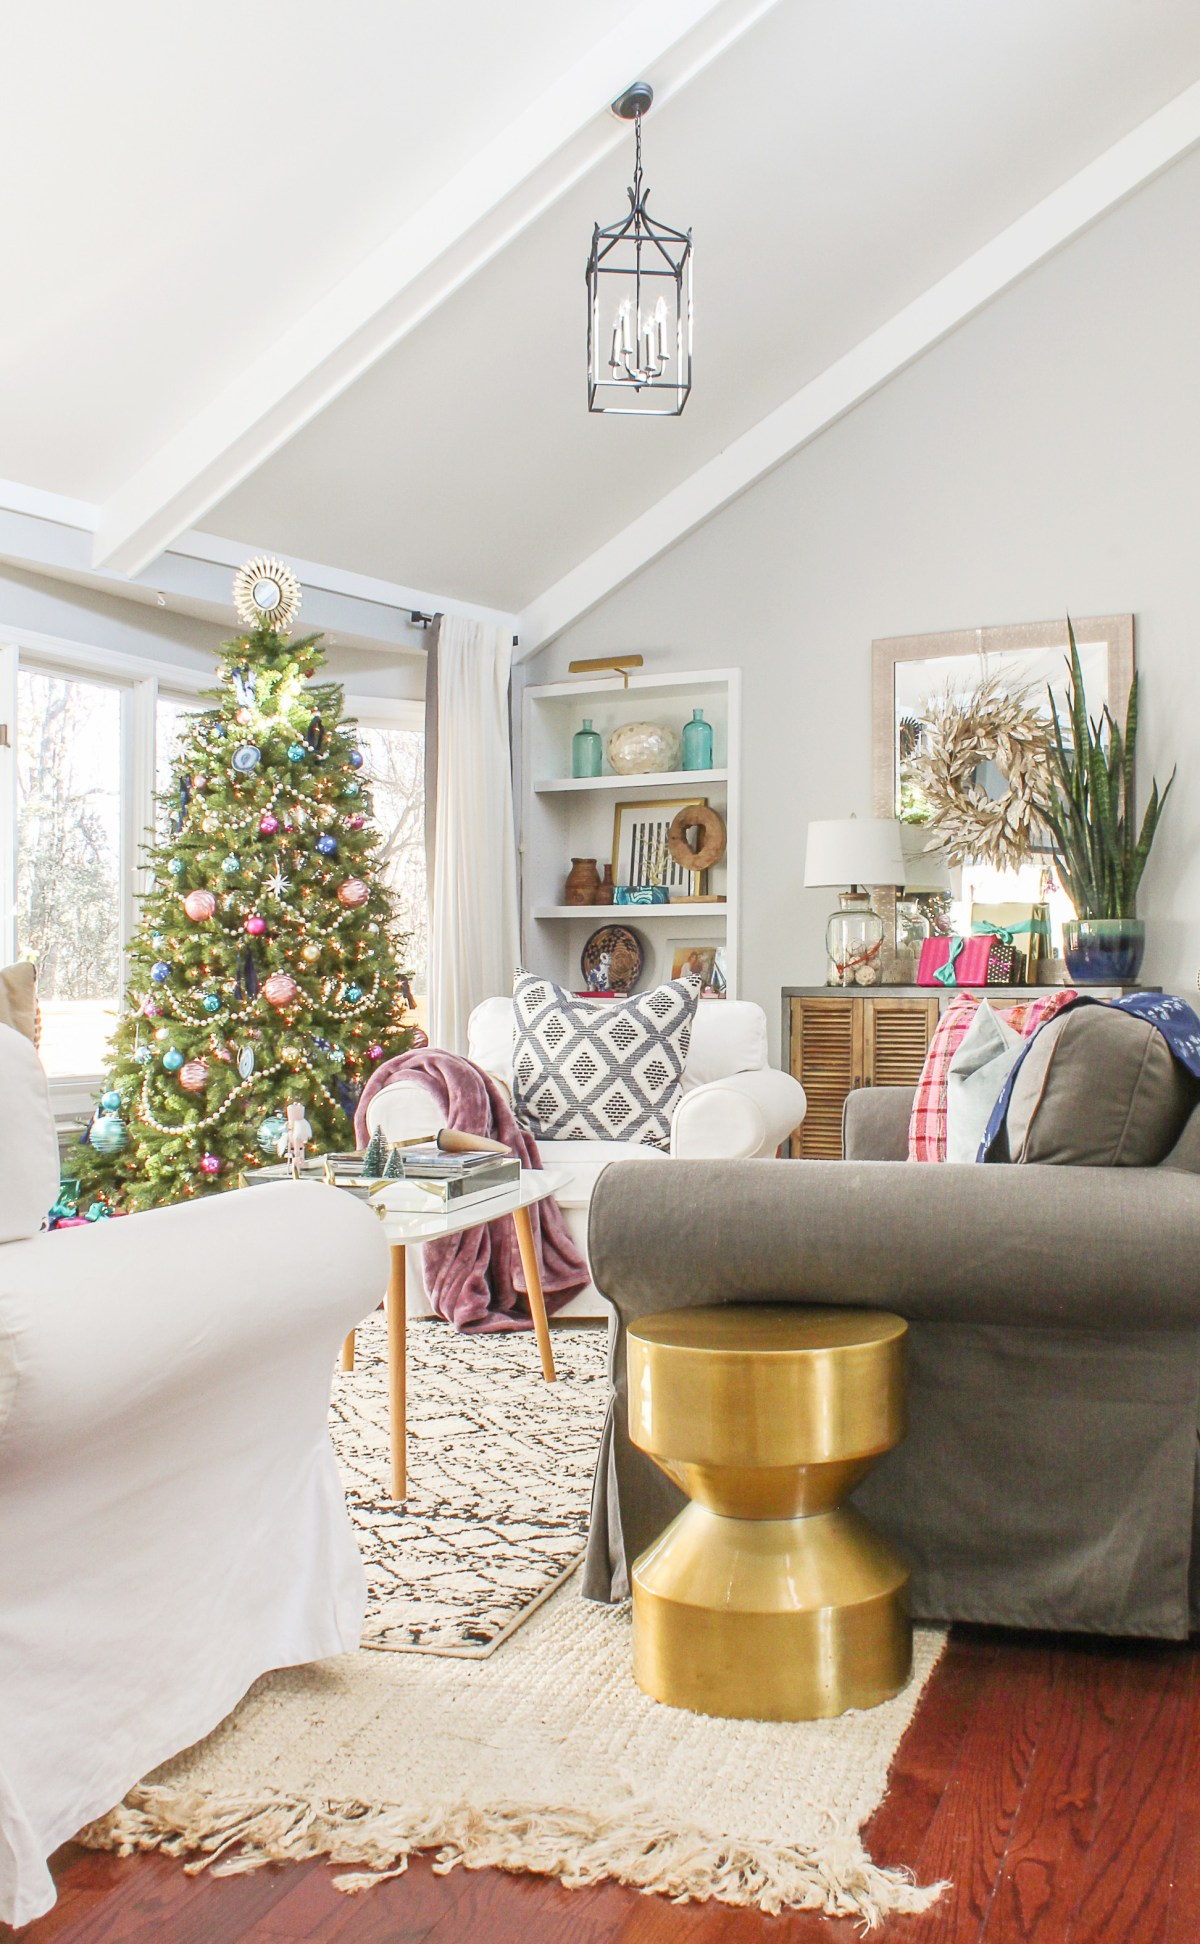 Boho chic christmas home tour 2017 part 1 modern christmas decor - Boho chic deco ...